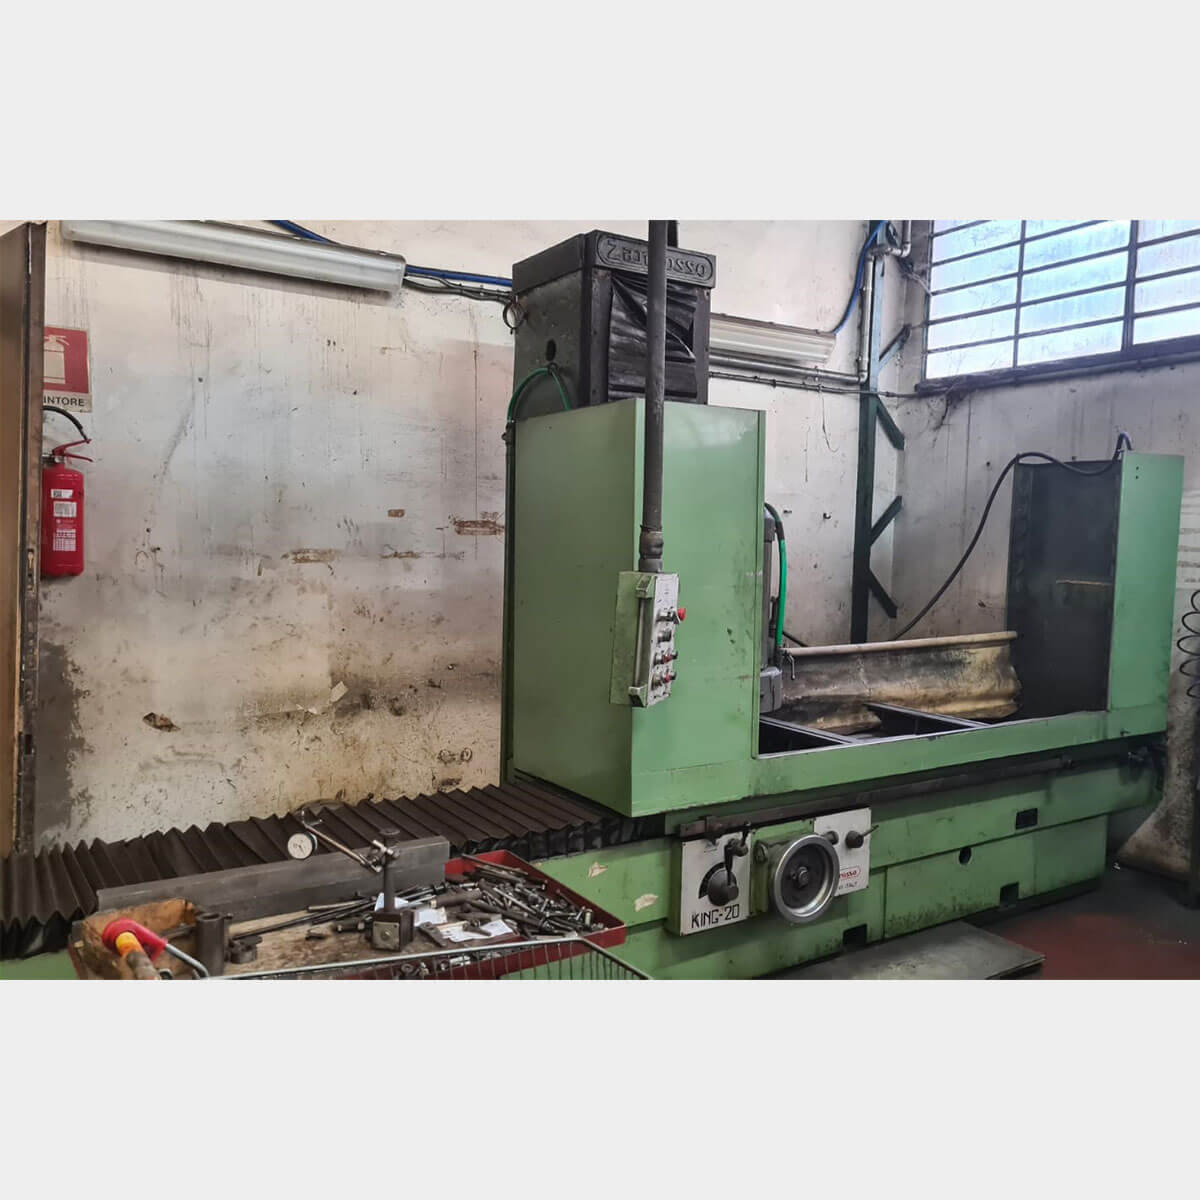 MU673 - ZANROSSO KING 20 Used Cylinder Head Resurfacing Machine